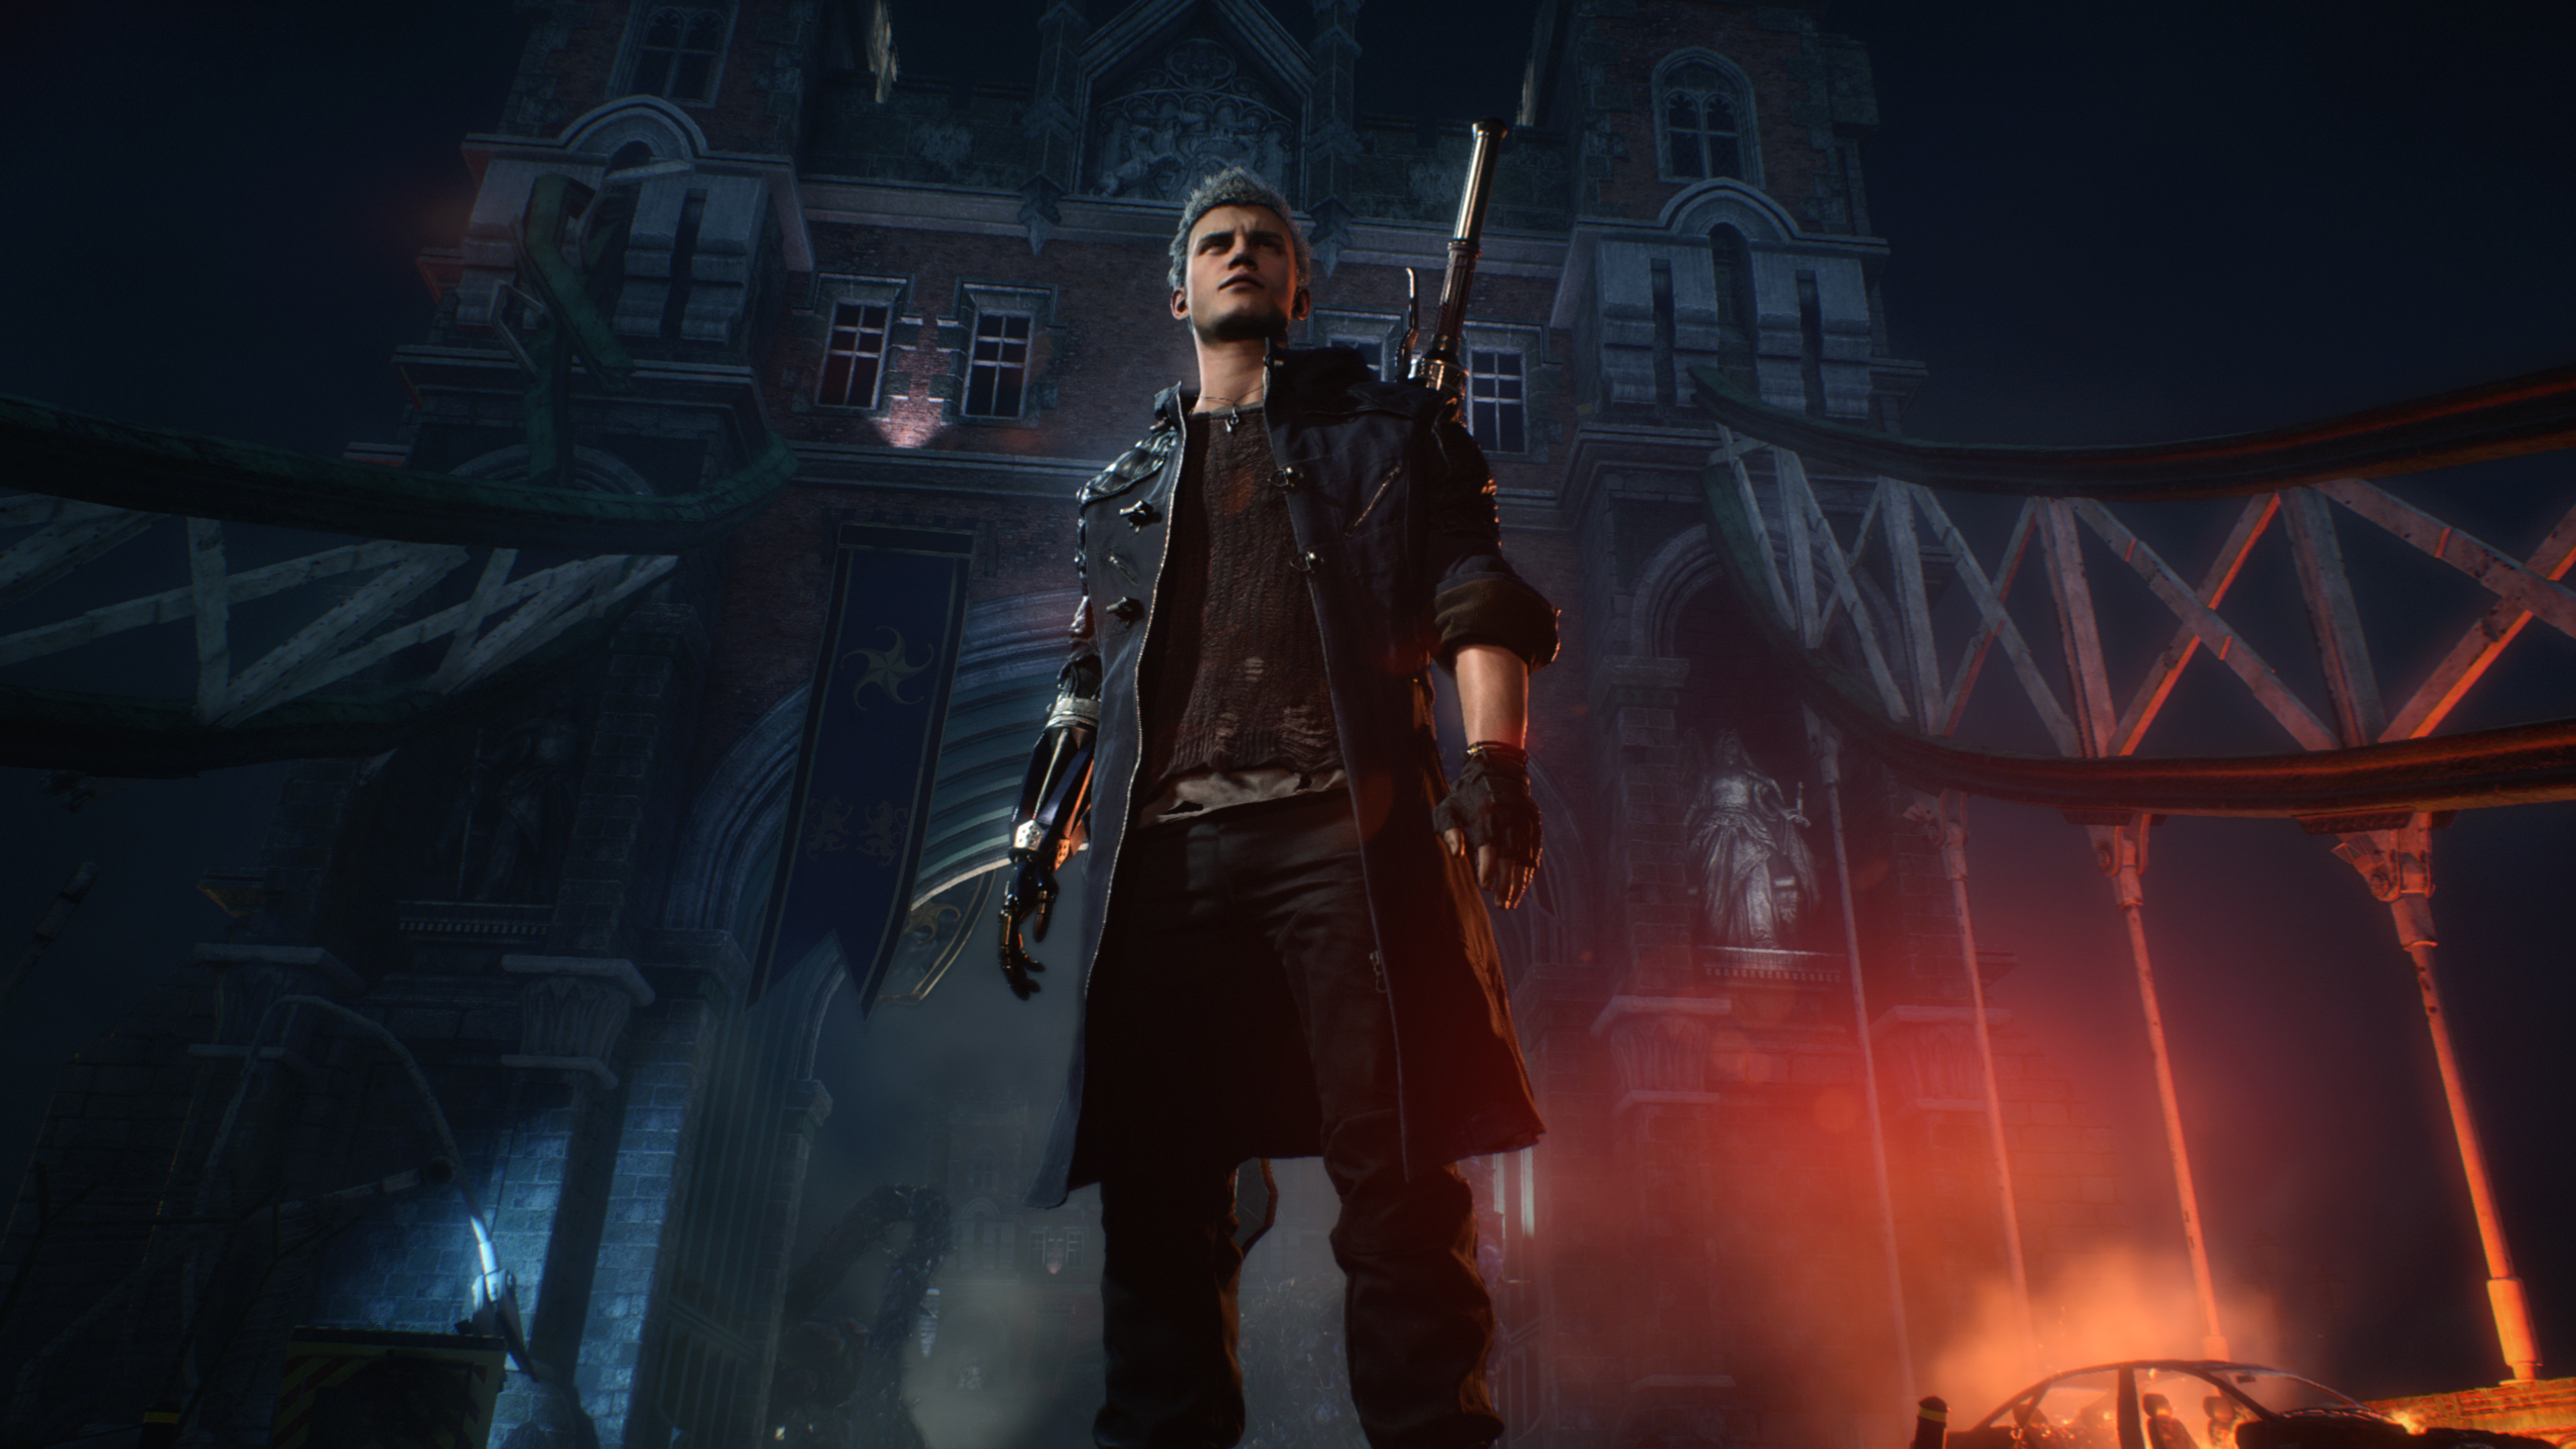 3840x2160 nero in devil may cry 5 4k hd 4k wallpapers images backgrounds photos and pictures - Devil may cry hd pics ...